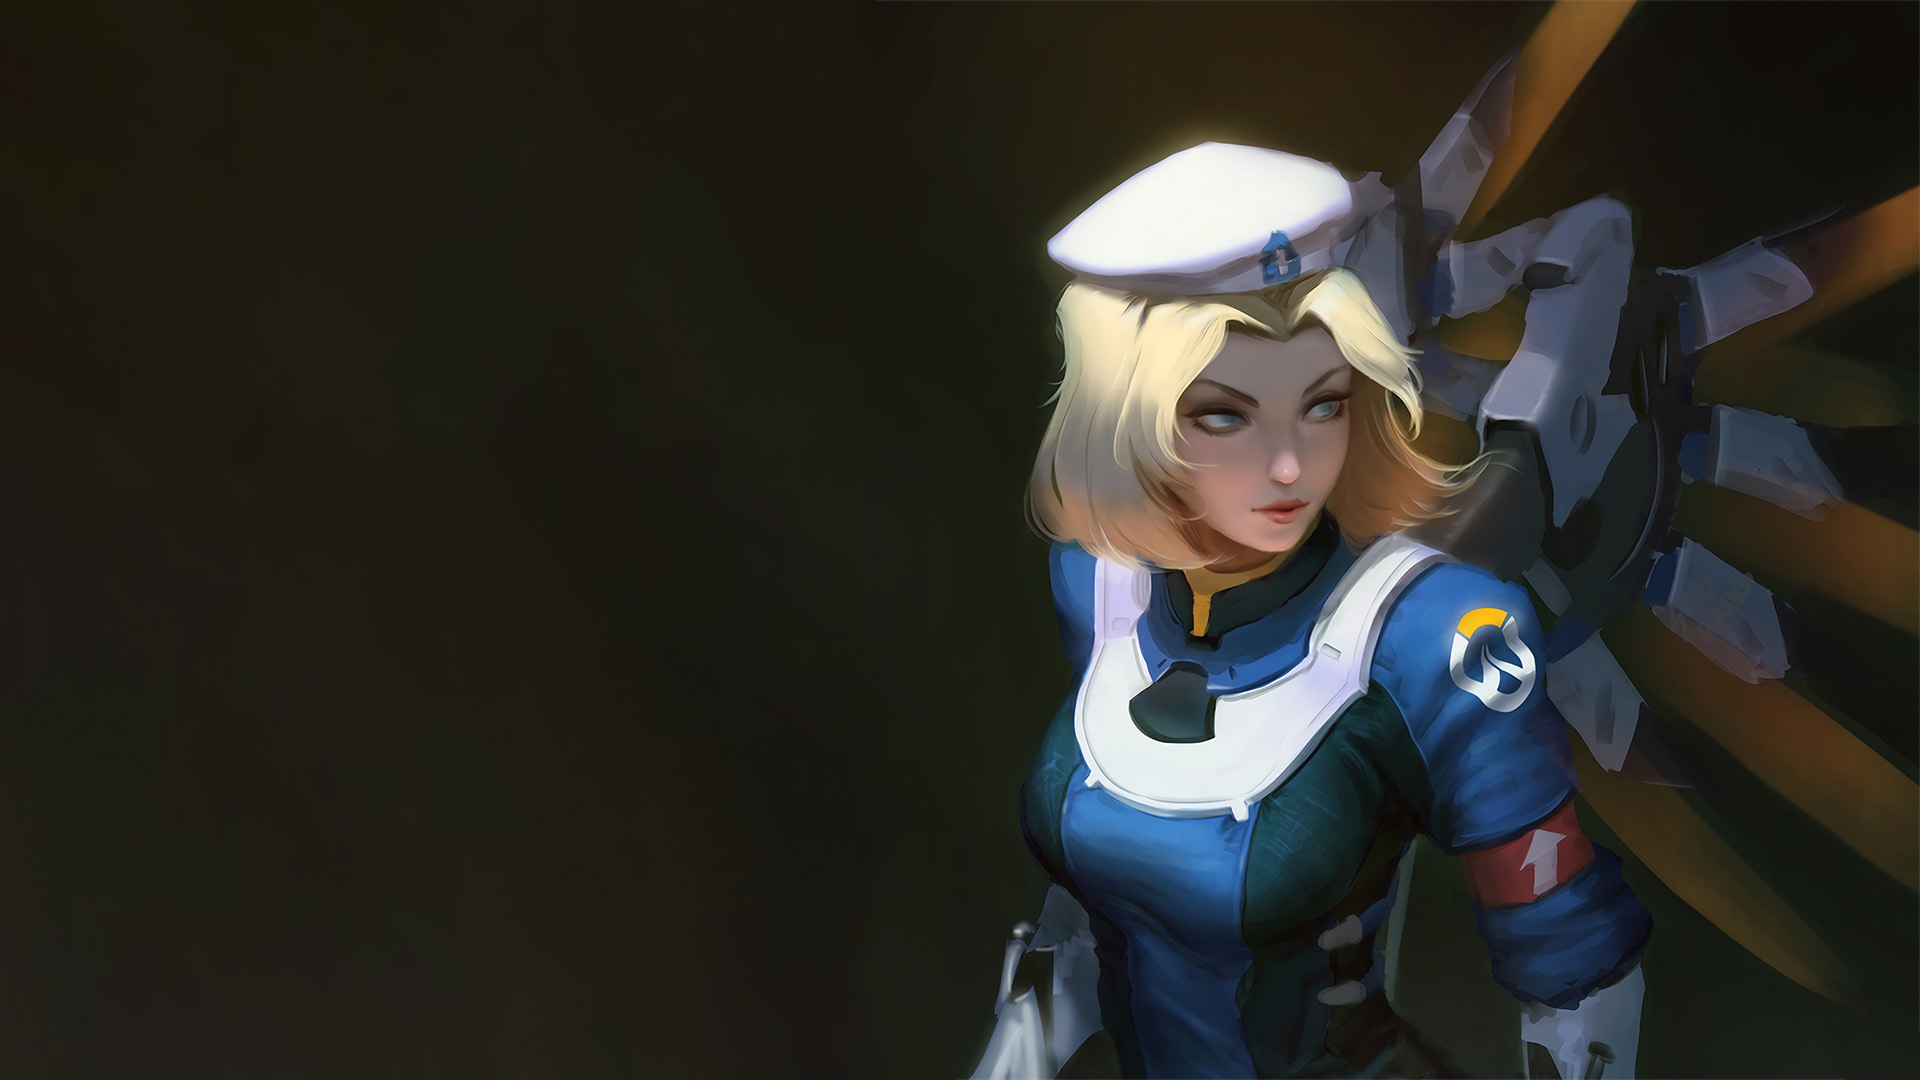 mercy-overwatch-artwork-5-pic.jpg